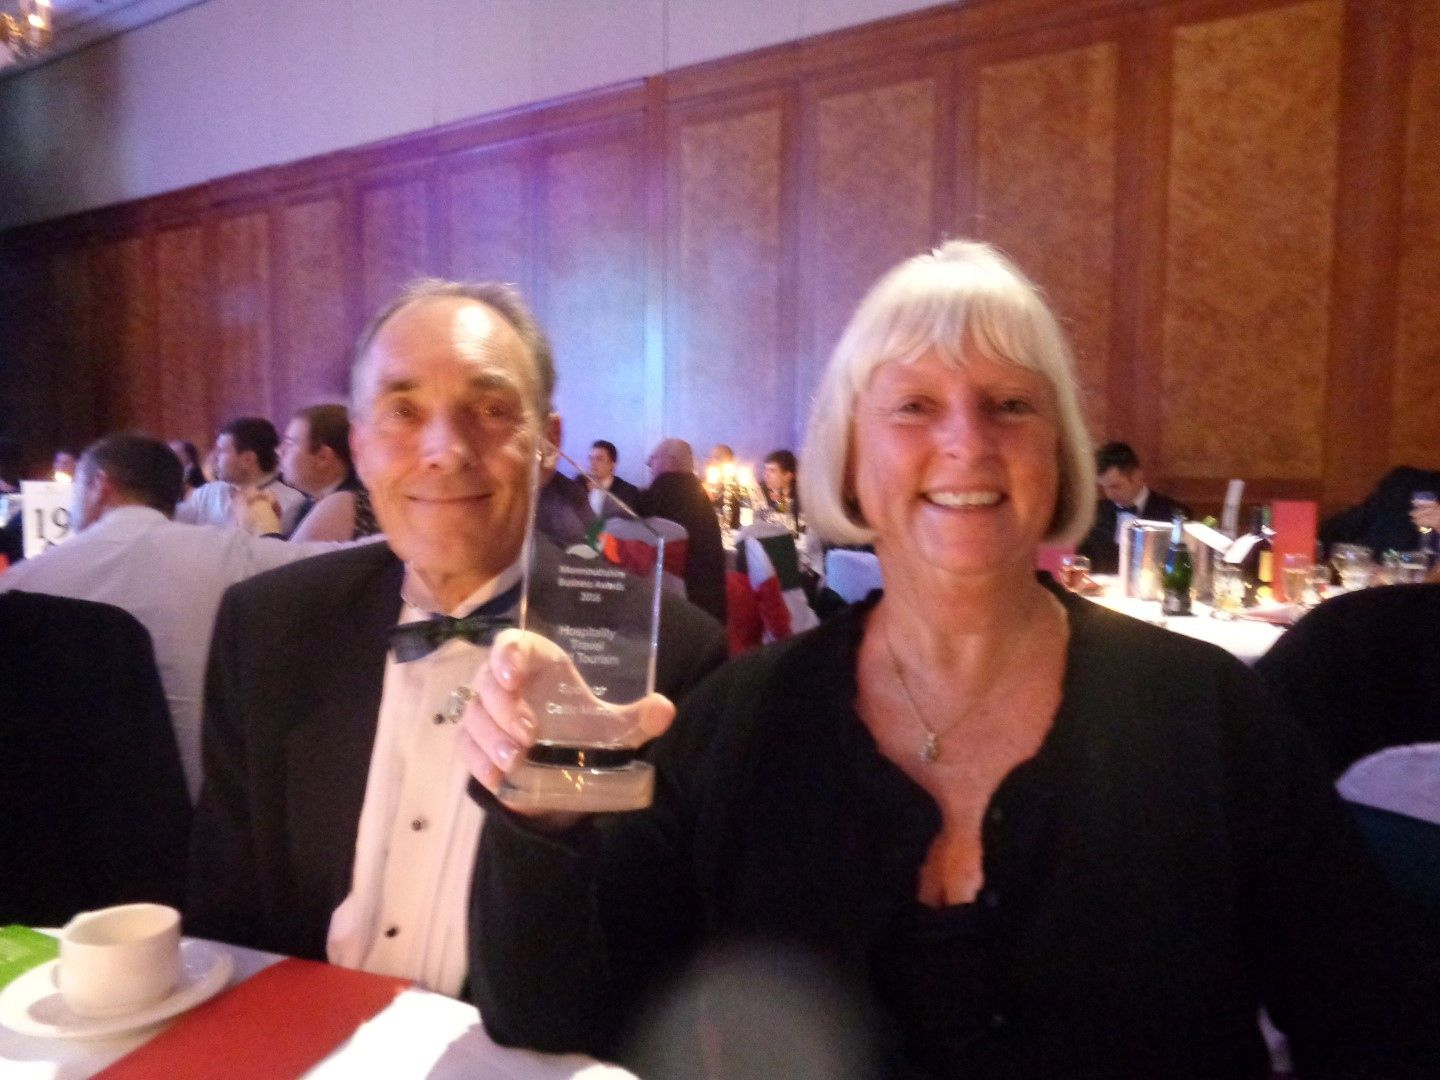 Business Awards accolade again for Monmouthshire Cottages